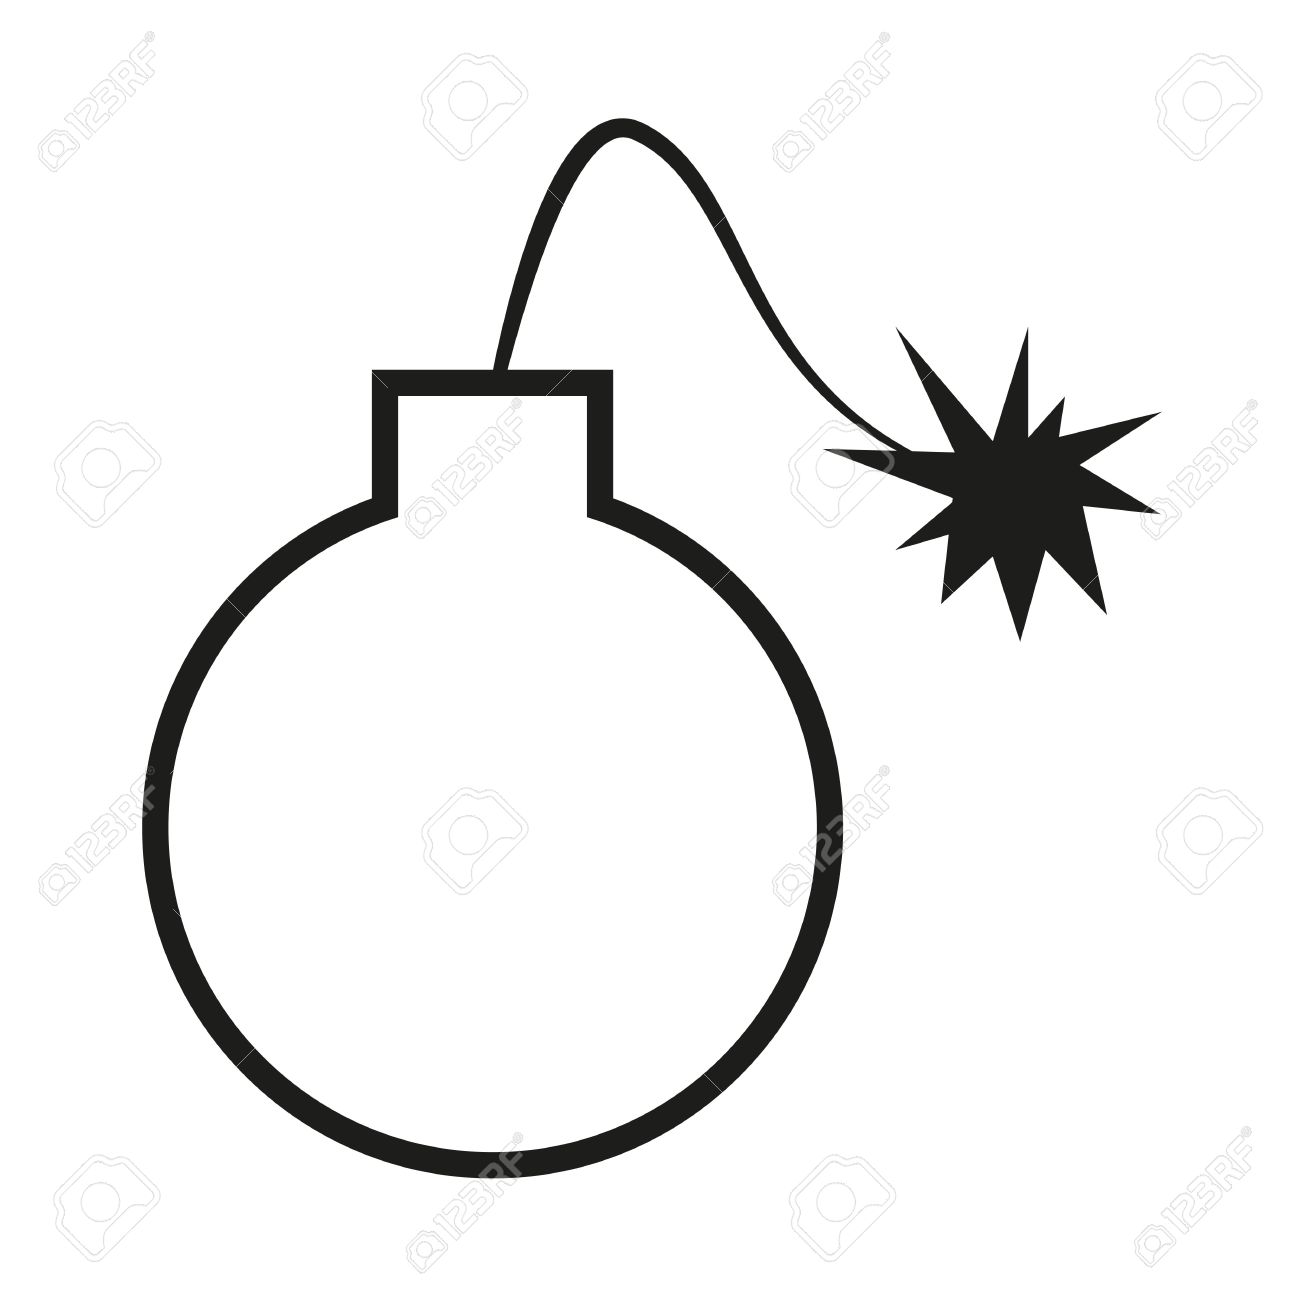 cartoon style bomb royalty free cliparts vectors and stock rh 123rf com  Explosive Grenades Cross Section